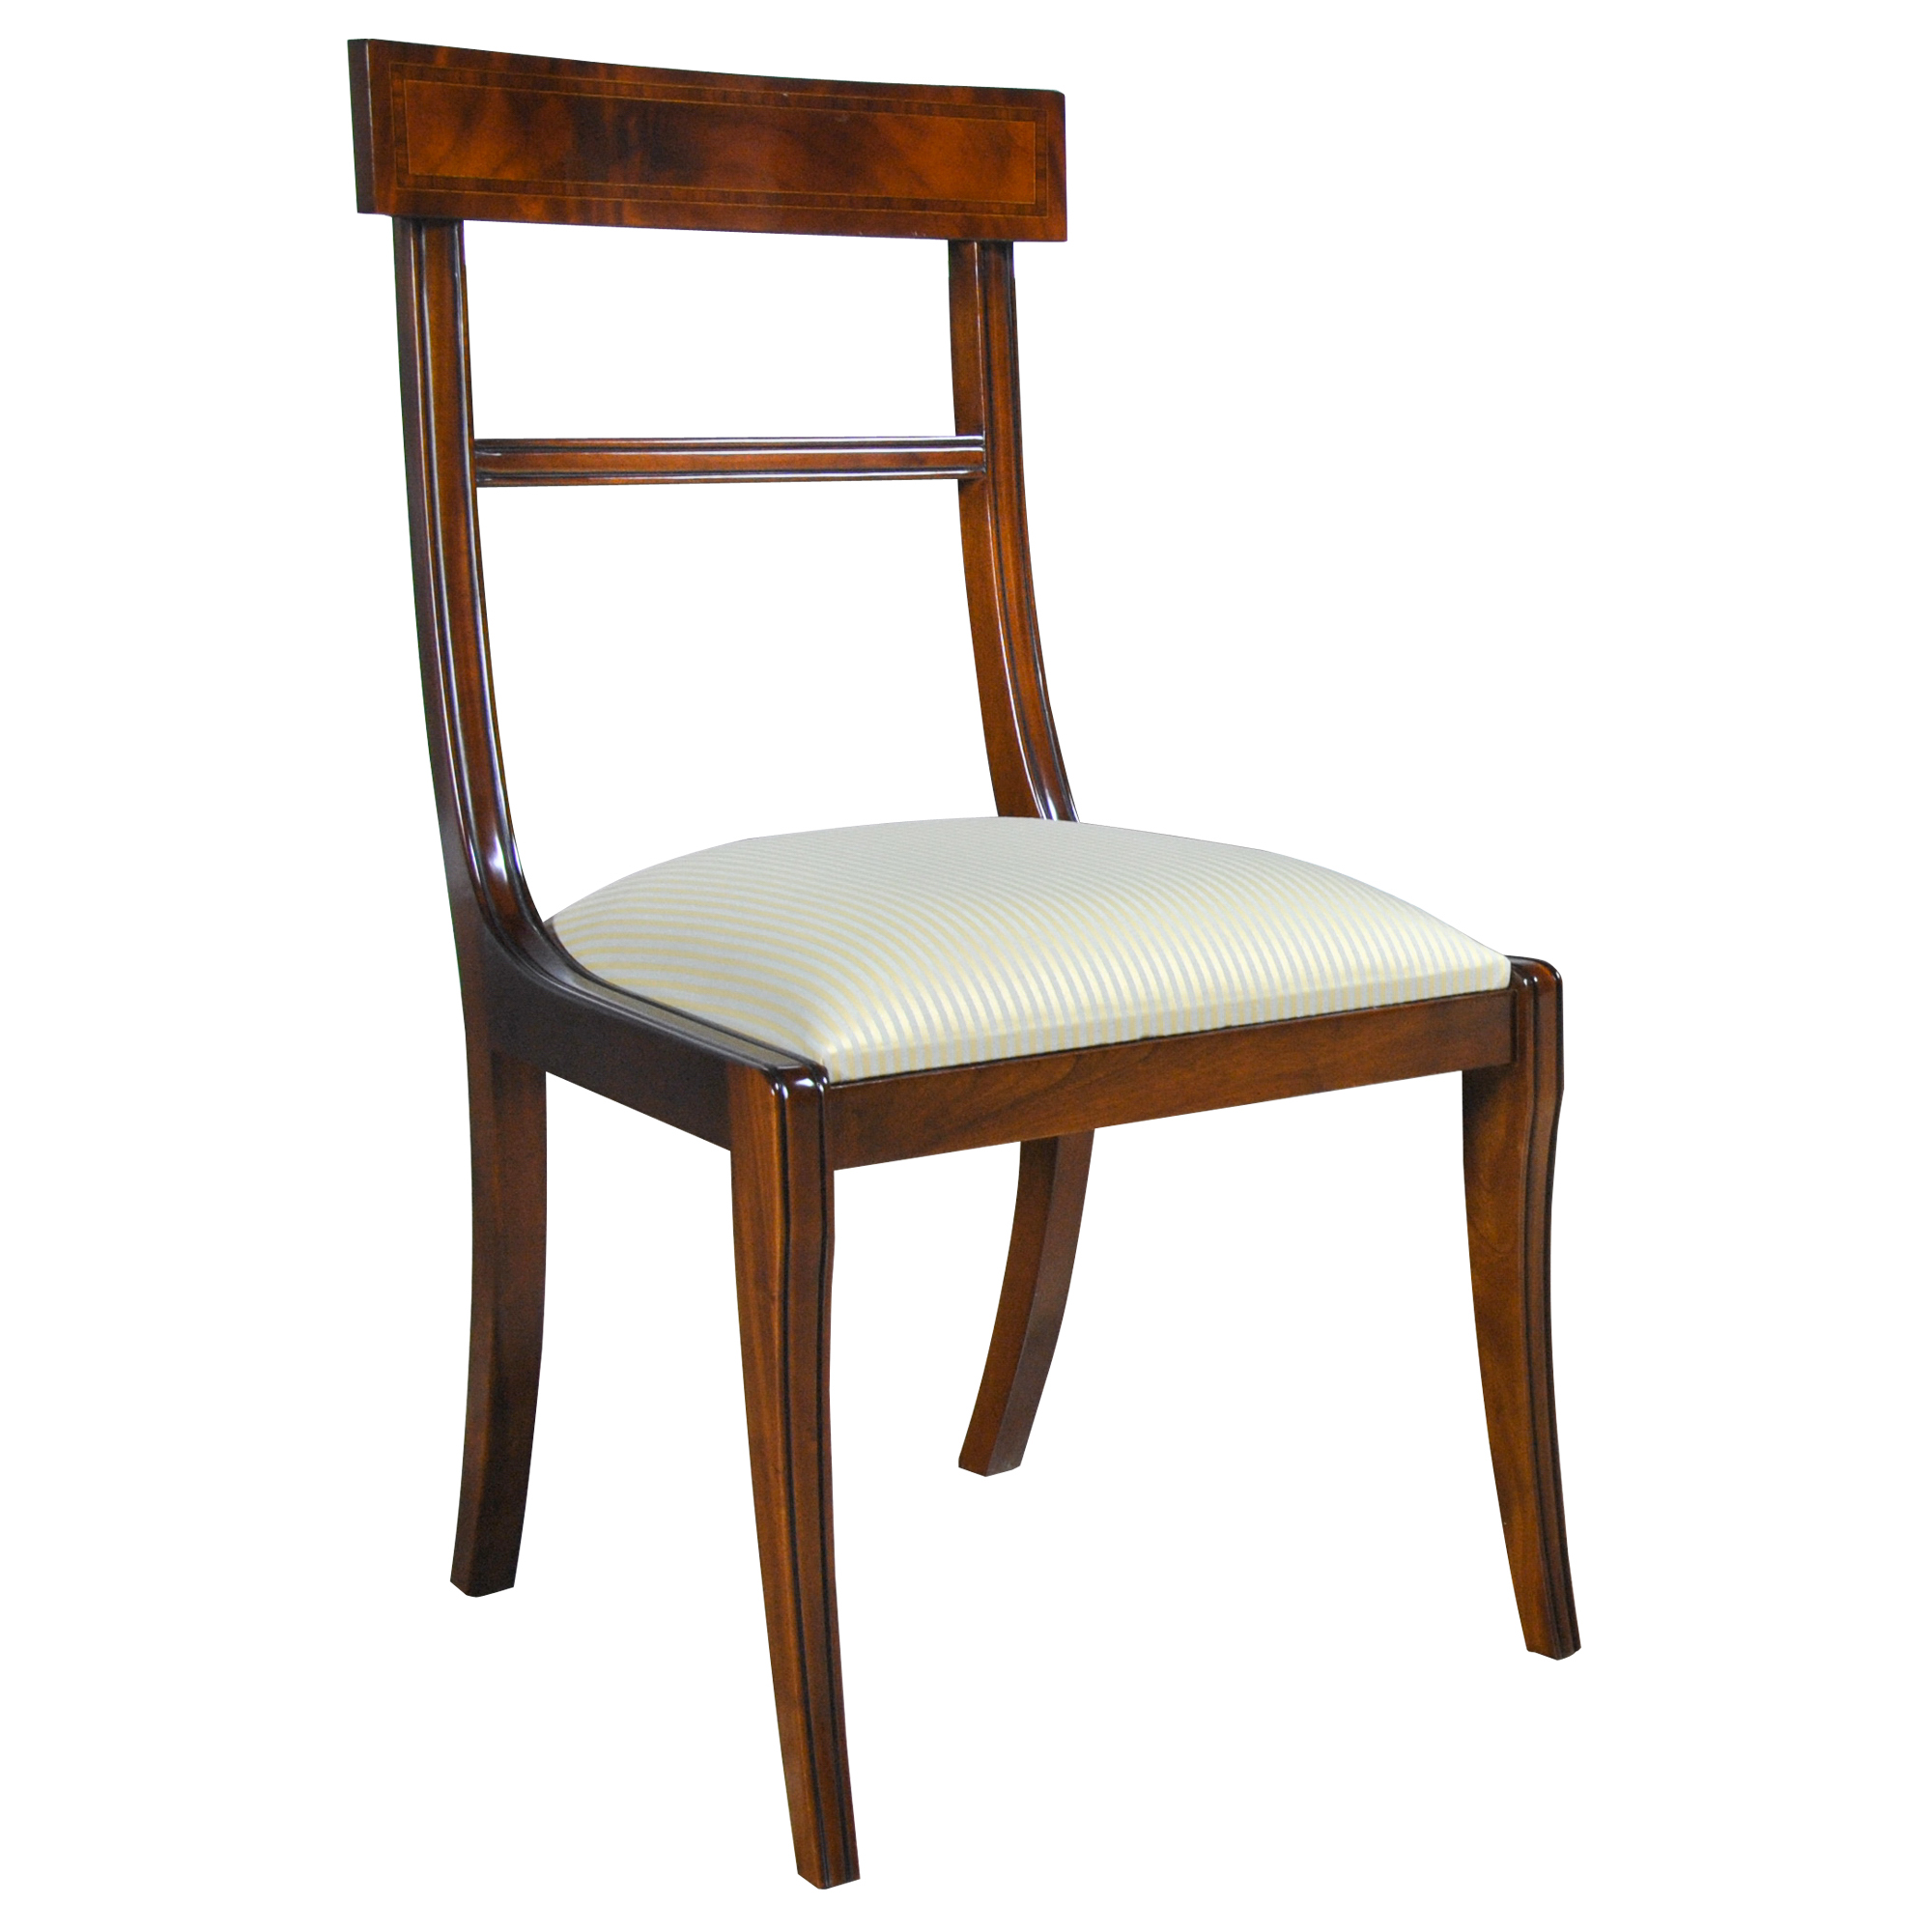 Regency inlaid side chair niagara furniture solid mahogany for Regency furniture living room sets